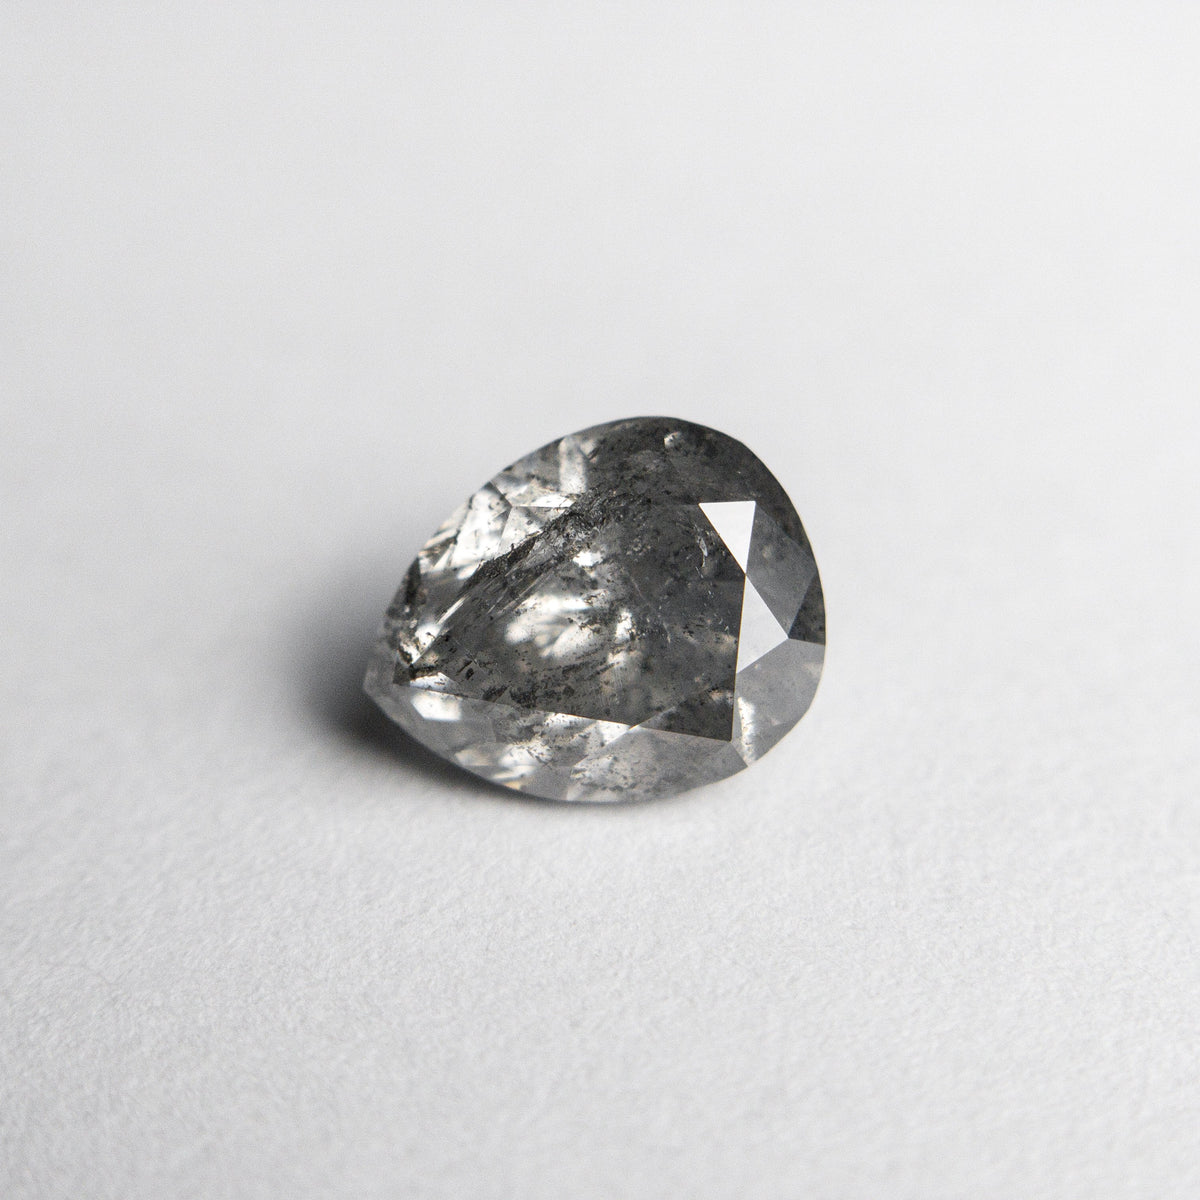 1.29ct 7.41x5.95x4.34mm Pear Brilliant 18452-08 hold D1709